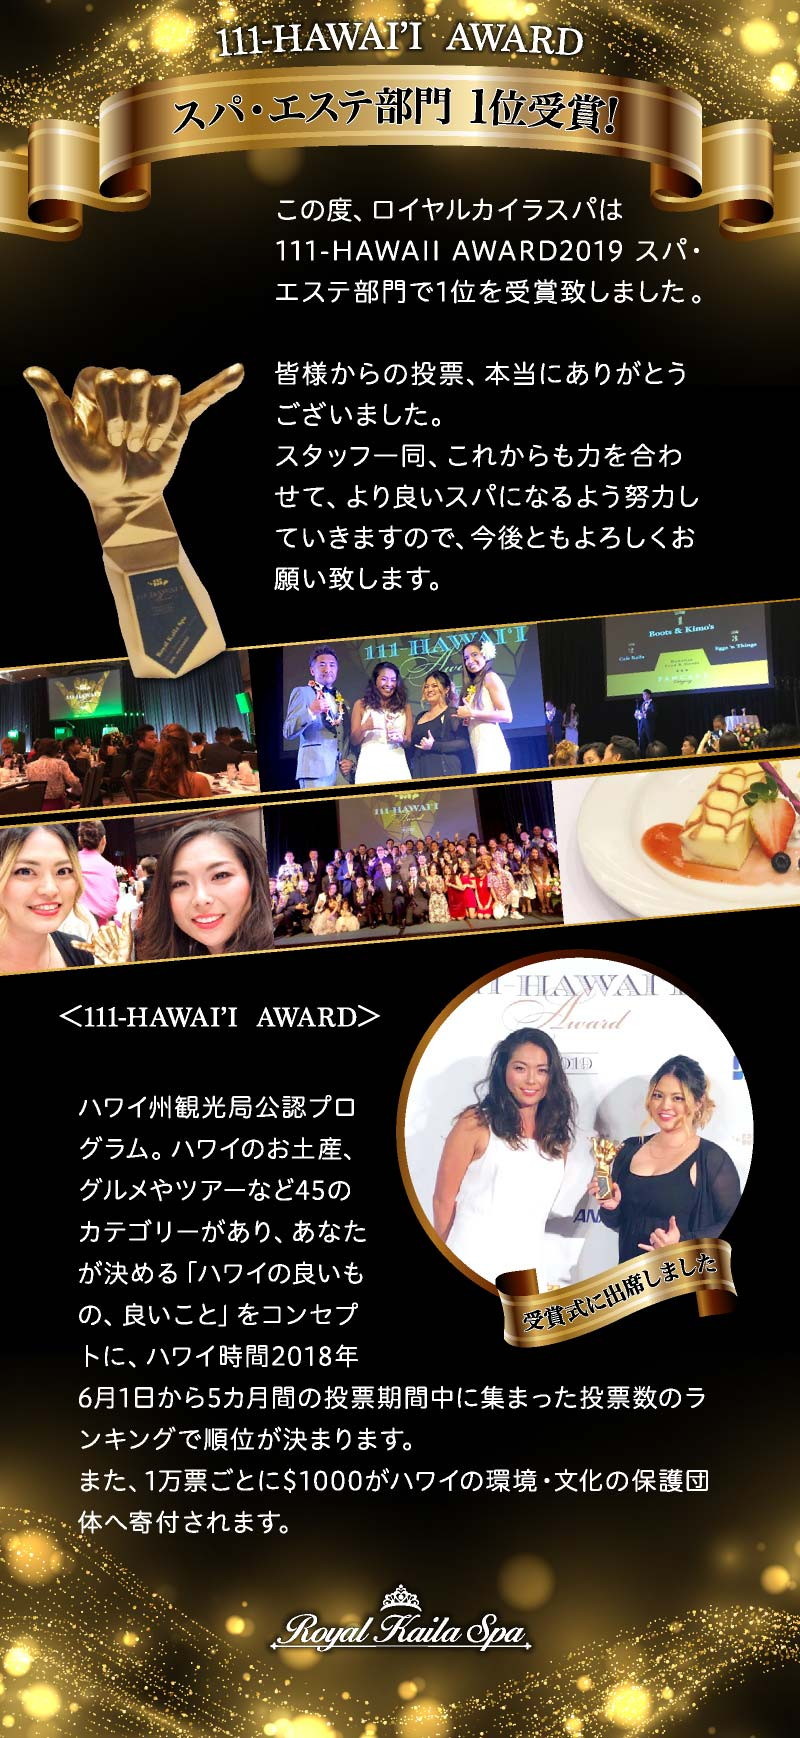 111-HAWAI'I AWARD No.1 in Spa Department !!